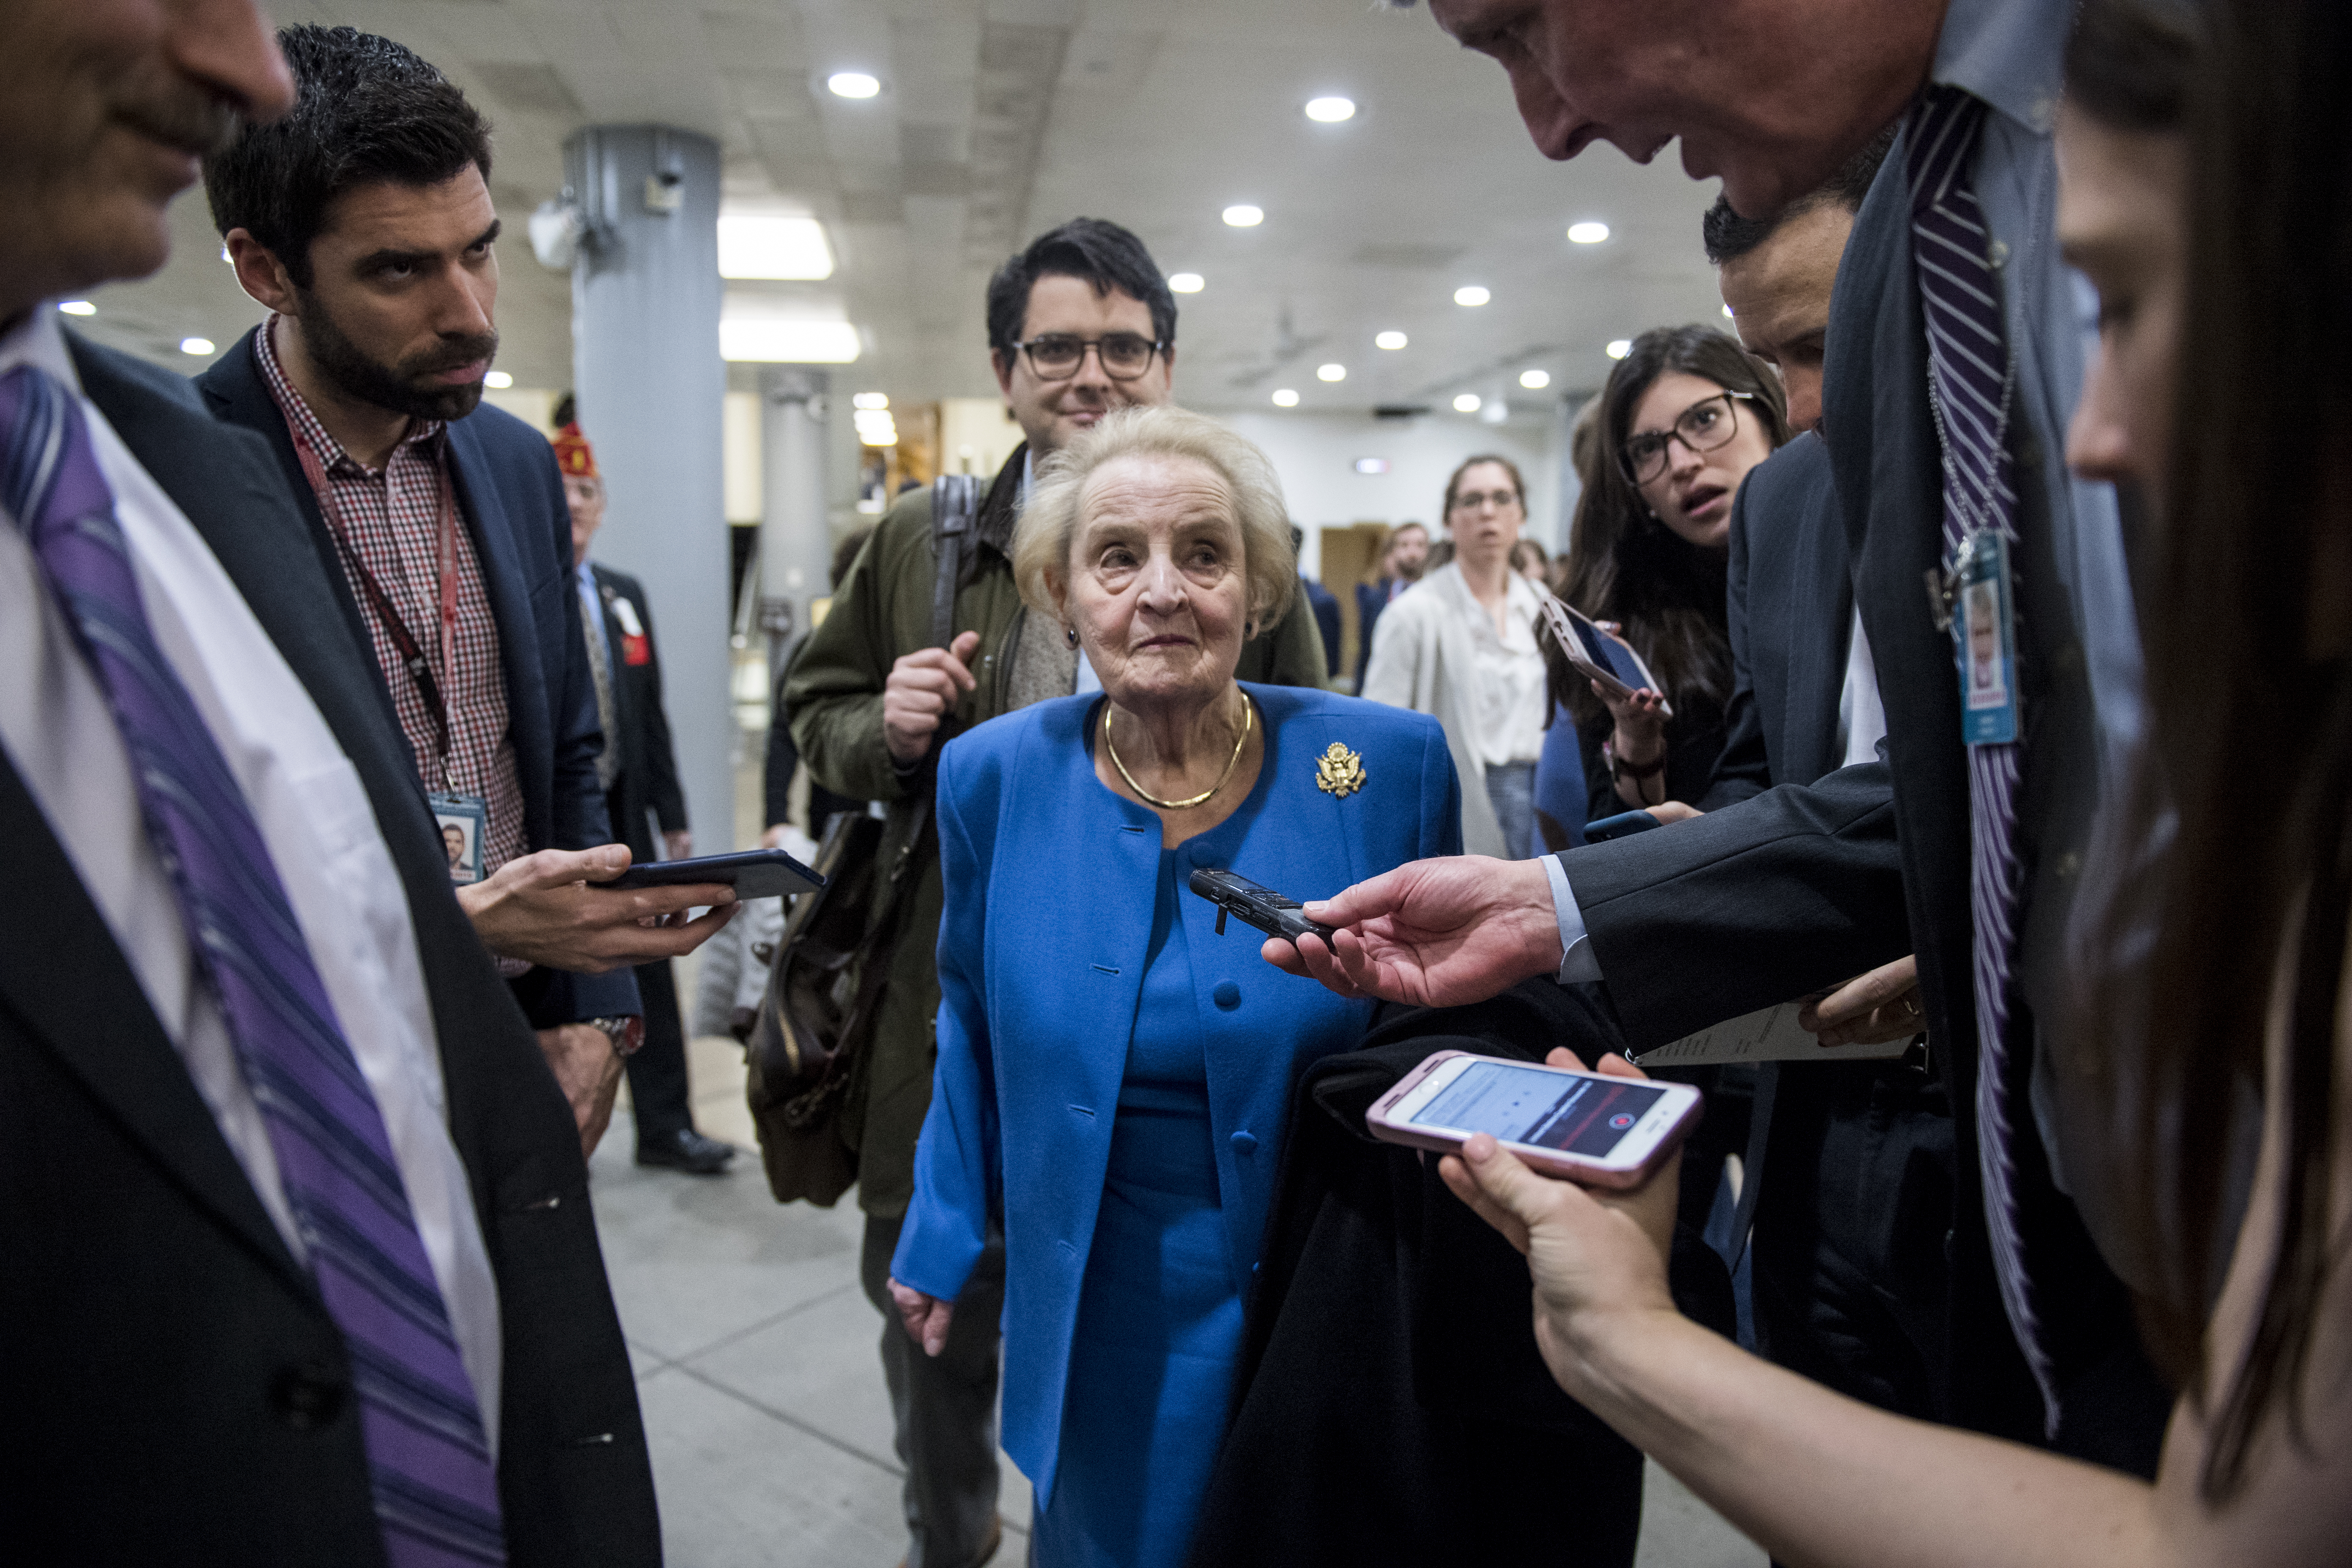 UNITED STATES - FEBRUARY 26: Former Secretary of State Madeleine Albright speaks with reporters as she waits to board the Senate subway in the Capitol on Tuesday, Feb. 26, 2019. (Photo By Bill Clark/CQ Roll Call)